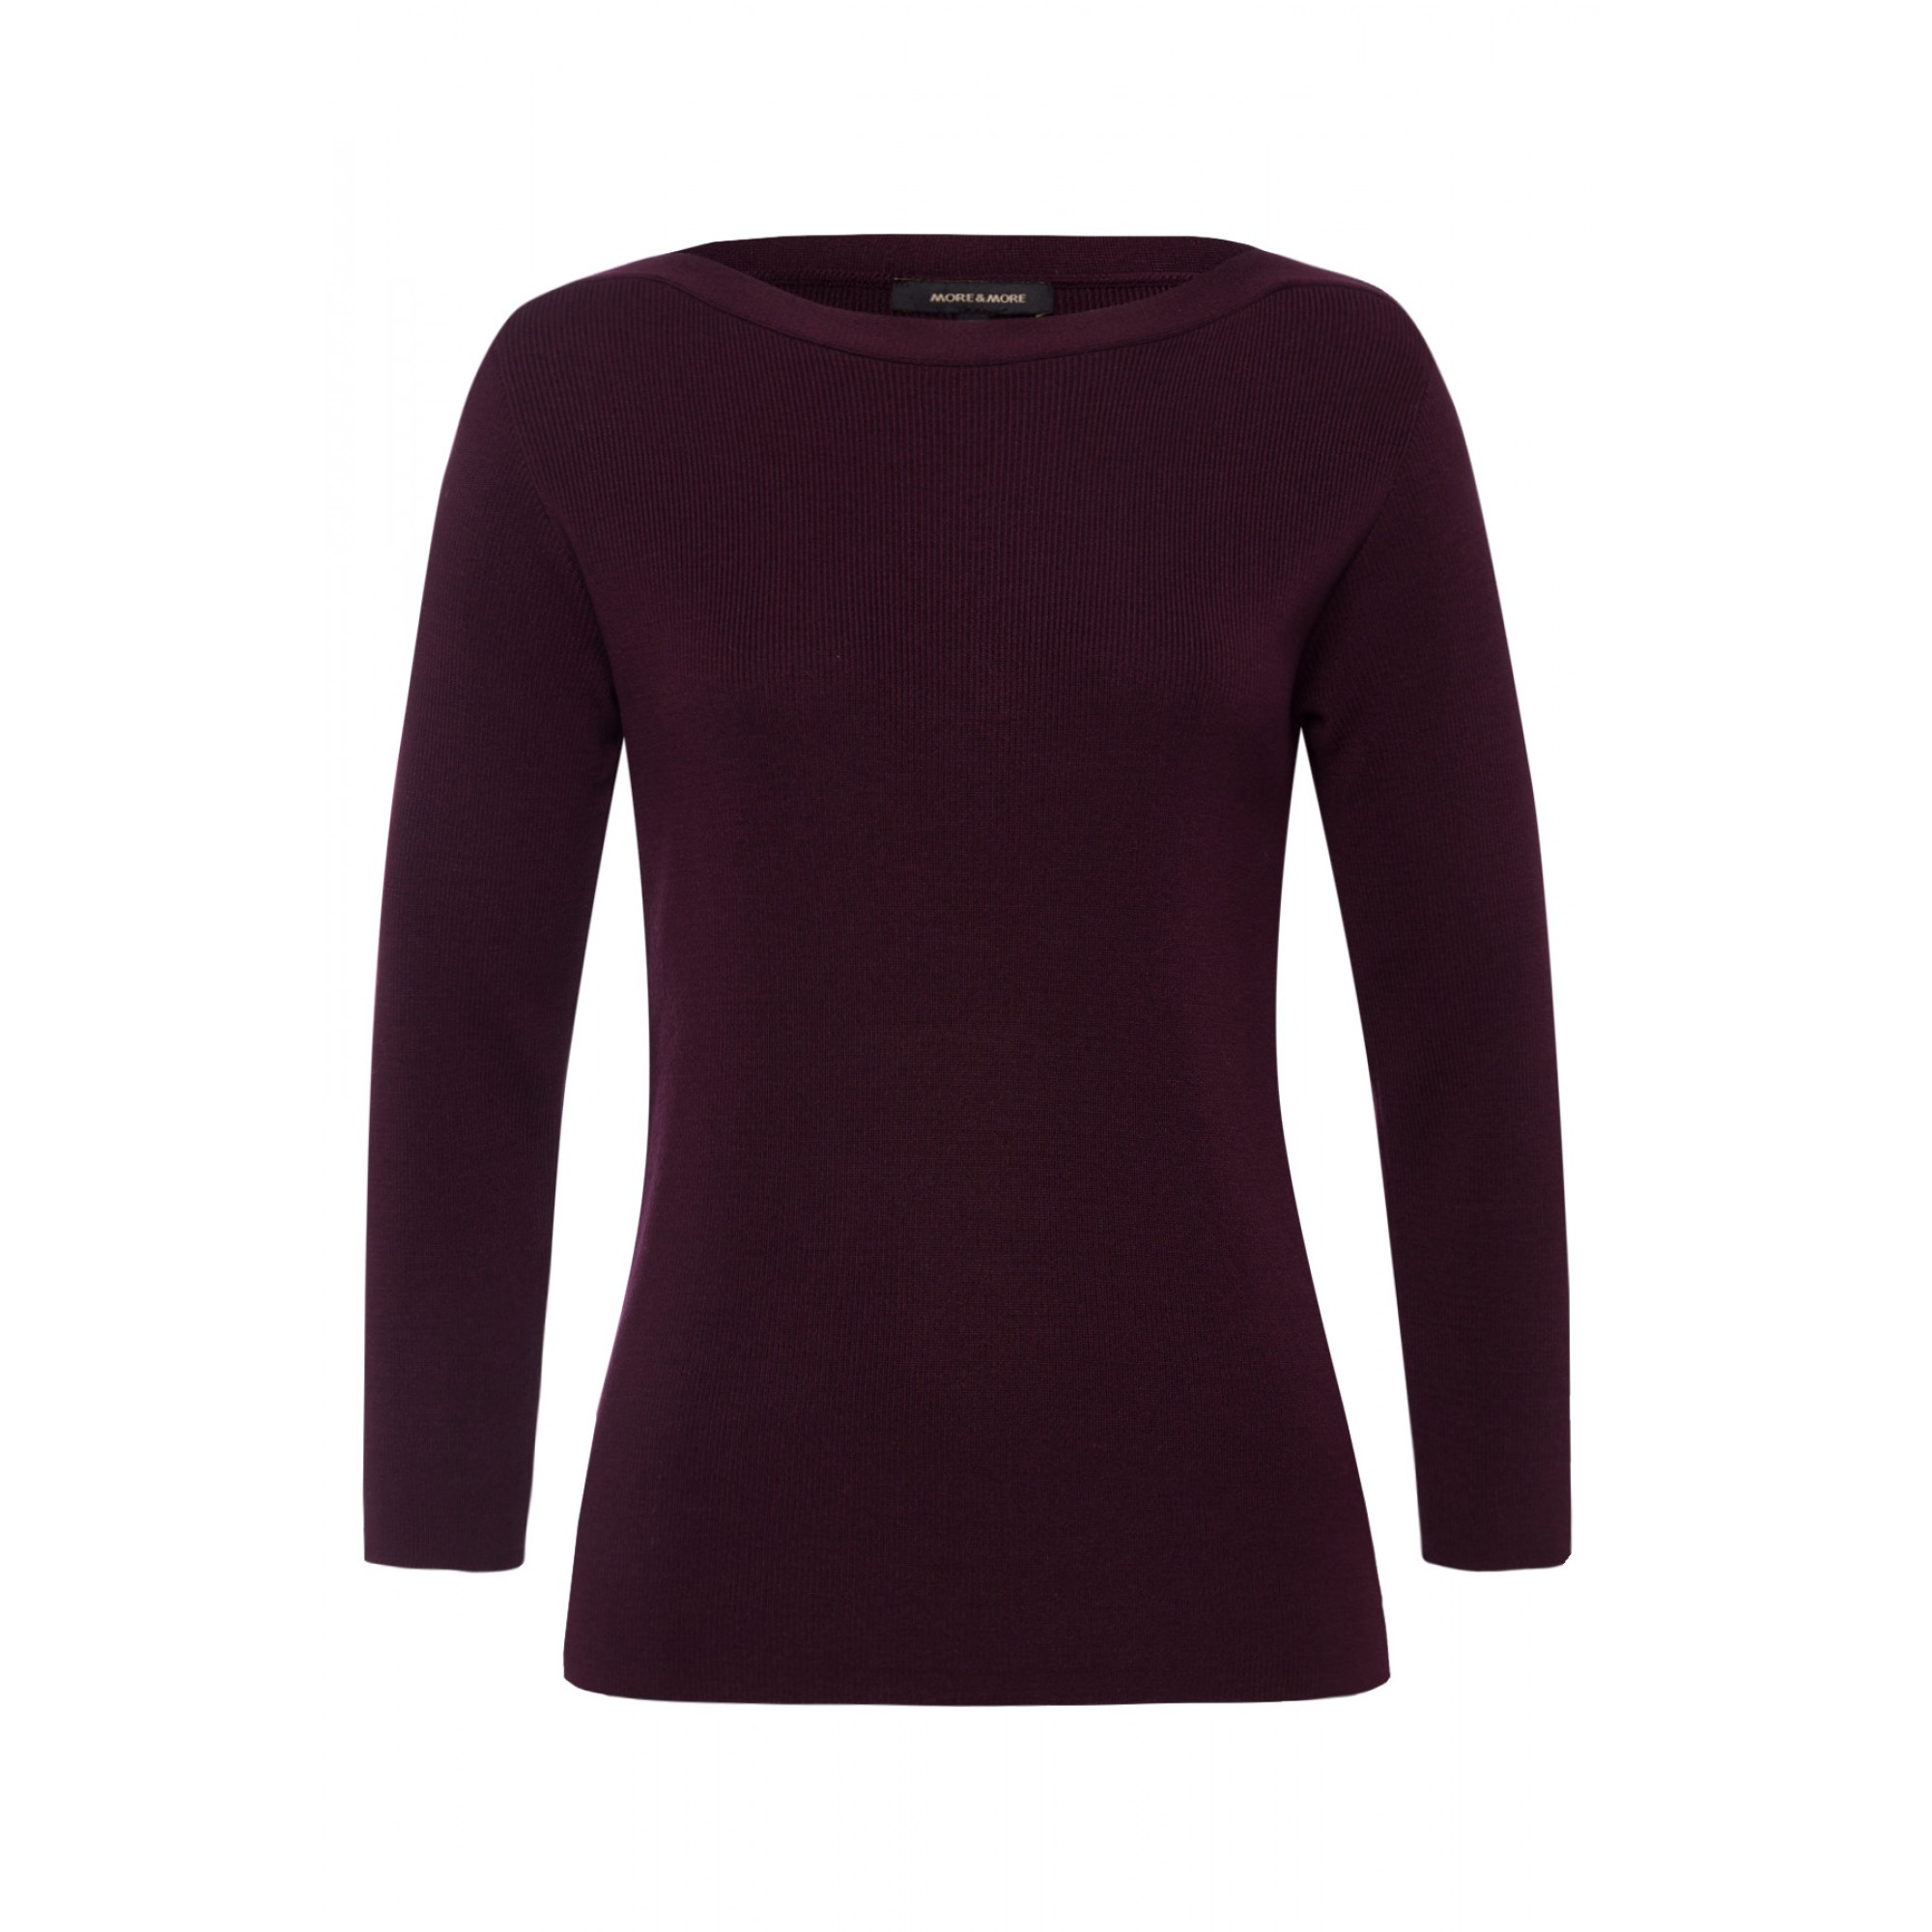 U-Boot Pullover, bordeaux 01961003-0566 1